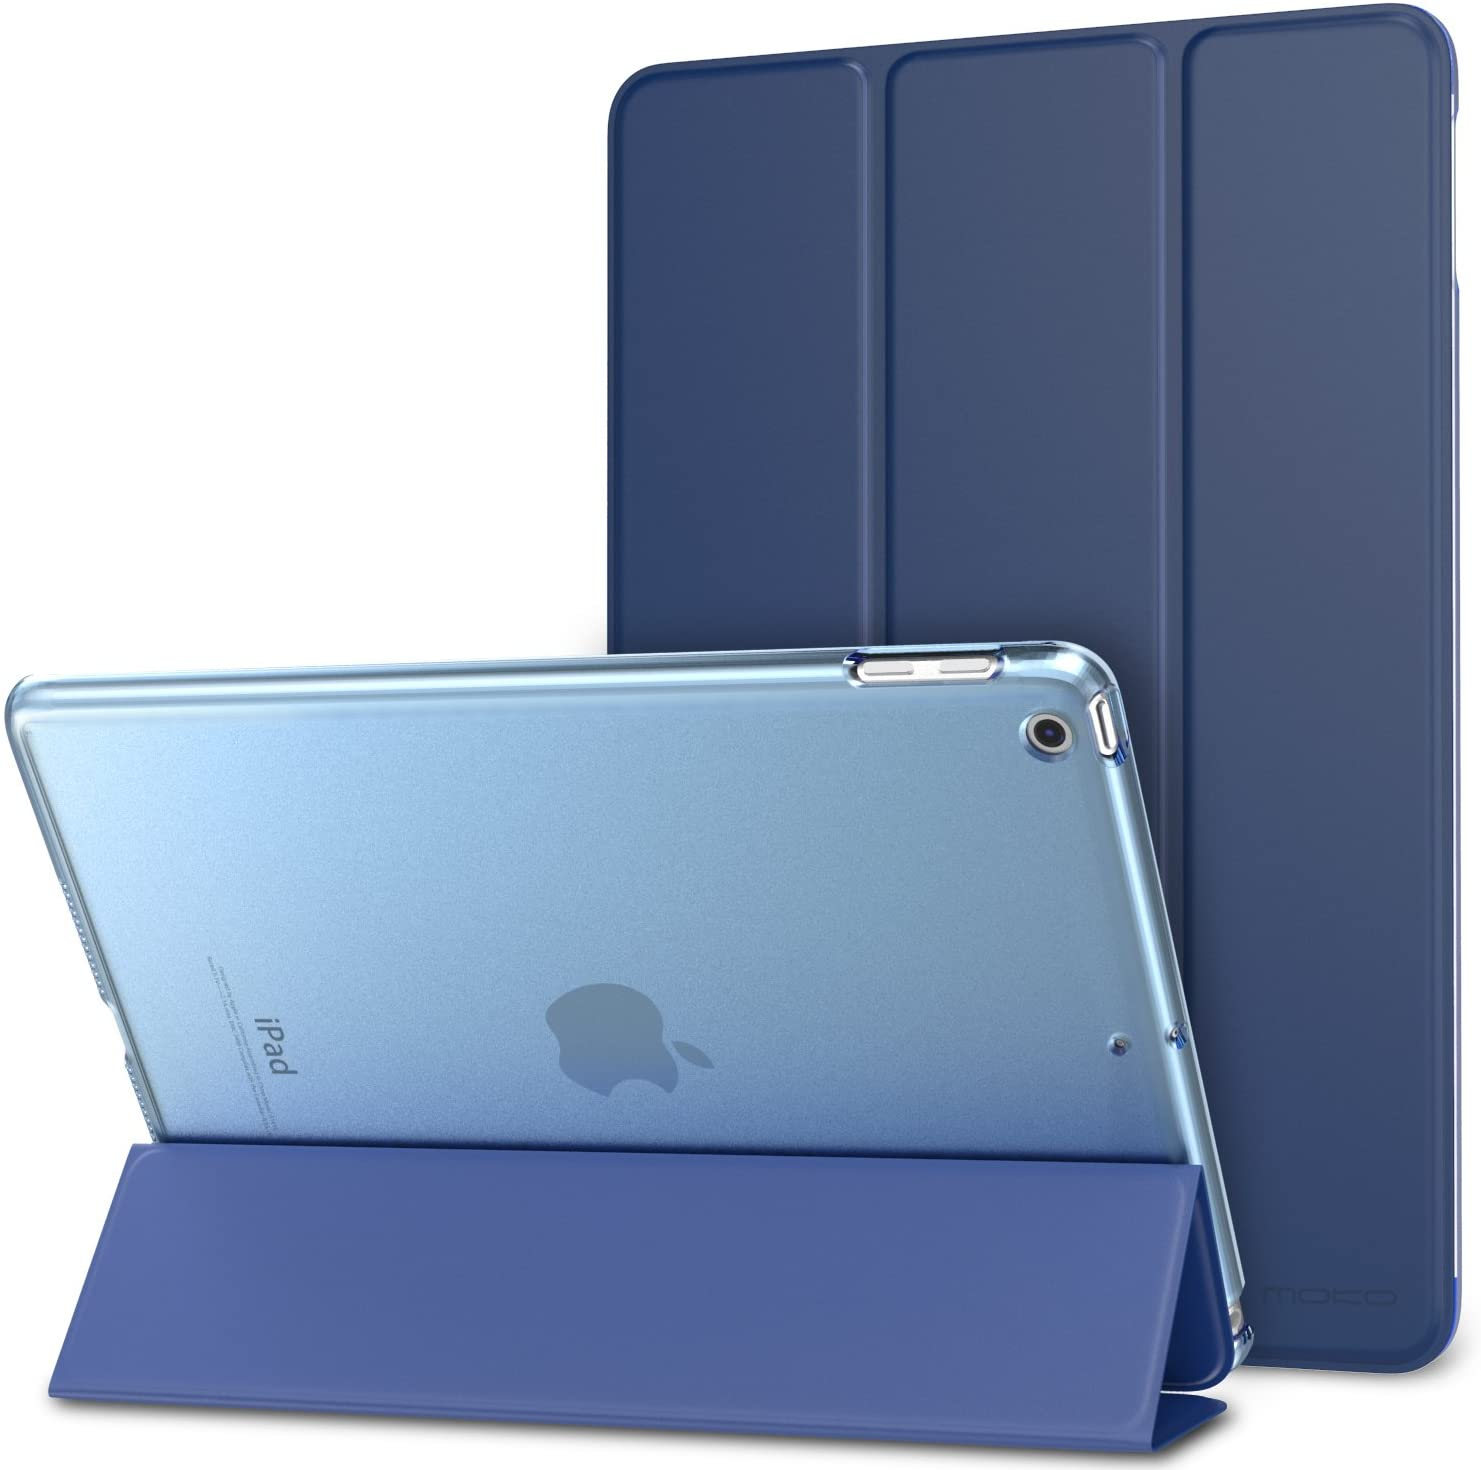 MoKo Case Fit 2018/2017 iPad 9.7 6th/5th Generation - Slim Lightweight Smart Shell Stand Cover with Translucent Frosted Back Protector Fit iPad 9.7 Inch 2018/2017, Navy Blue(Auto Wake/Sleep)